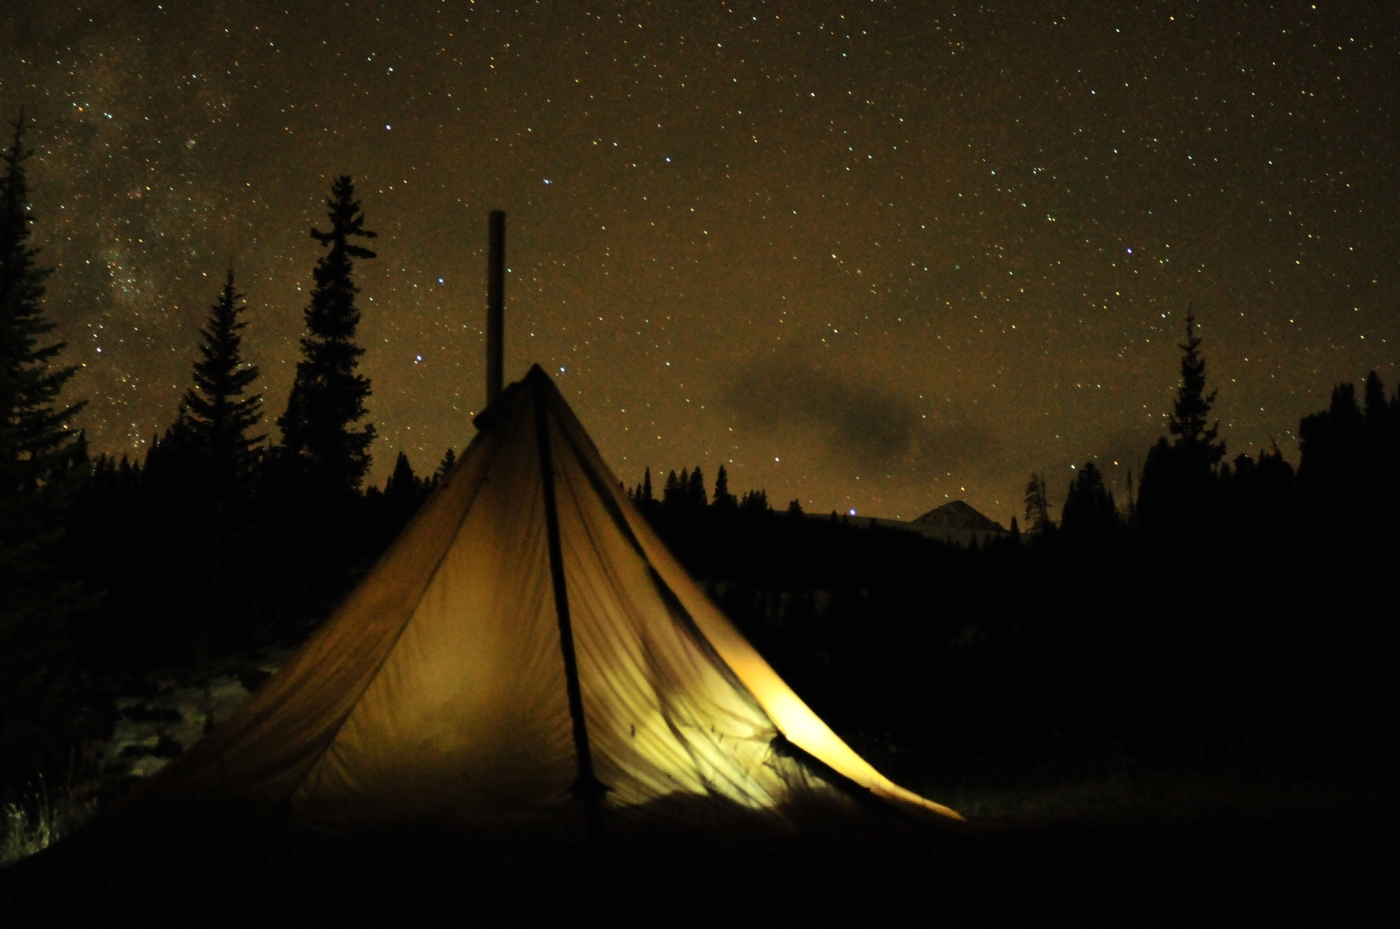 Winter Camping: How to build a DIY tipi and wood burning